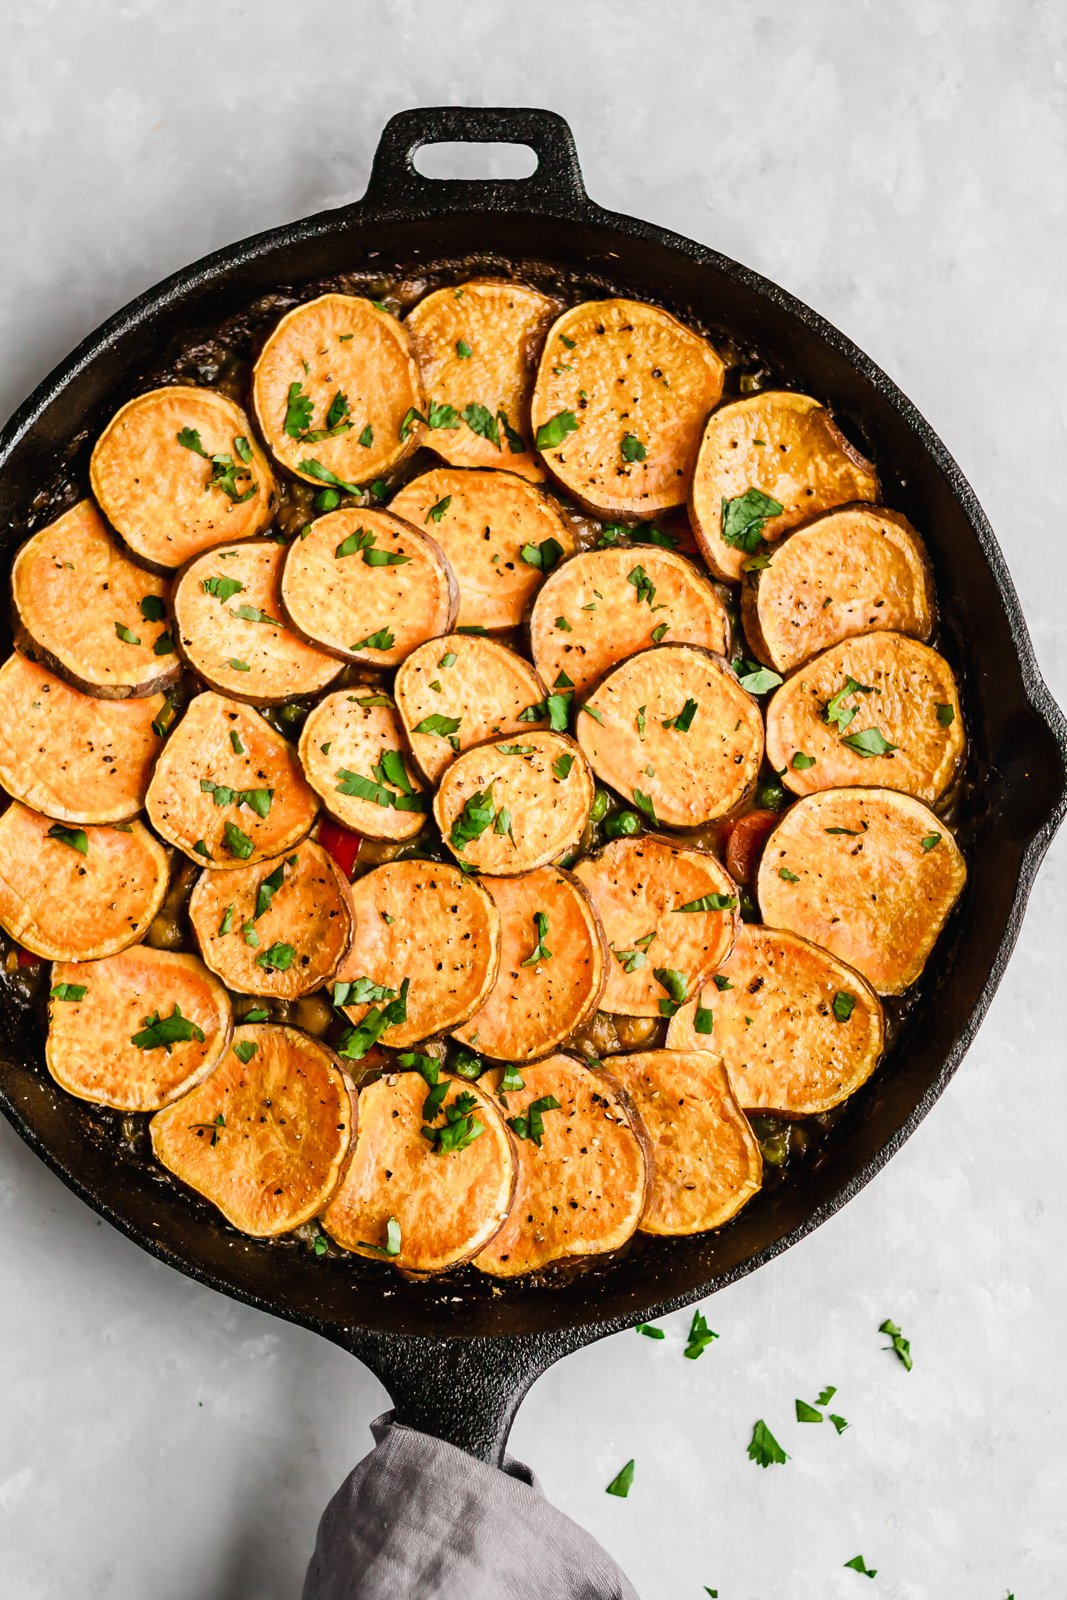 Delicious vegan and gluten-free curry chickpea pot pie recipe with a crust made of sliced sweet potatoes! This easy to make dinner is made in one pan and is packed with plant-based protein.